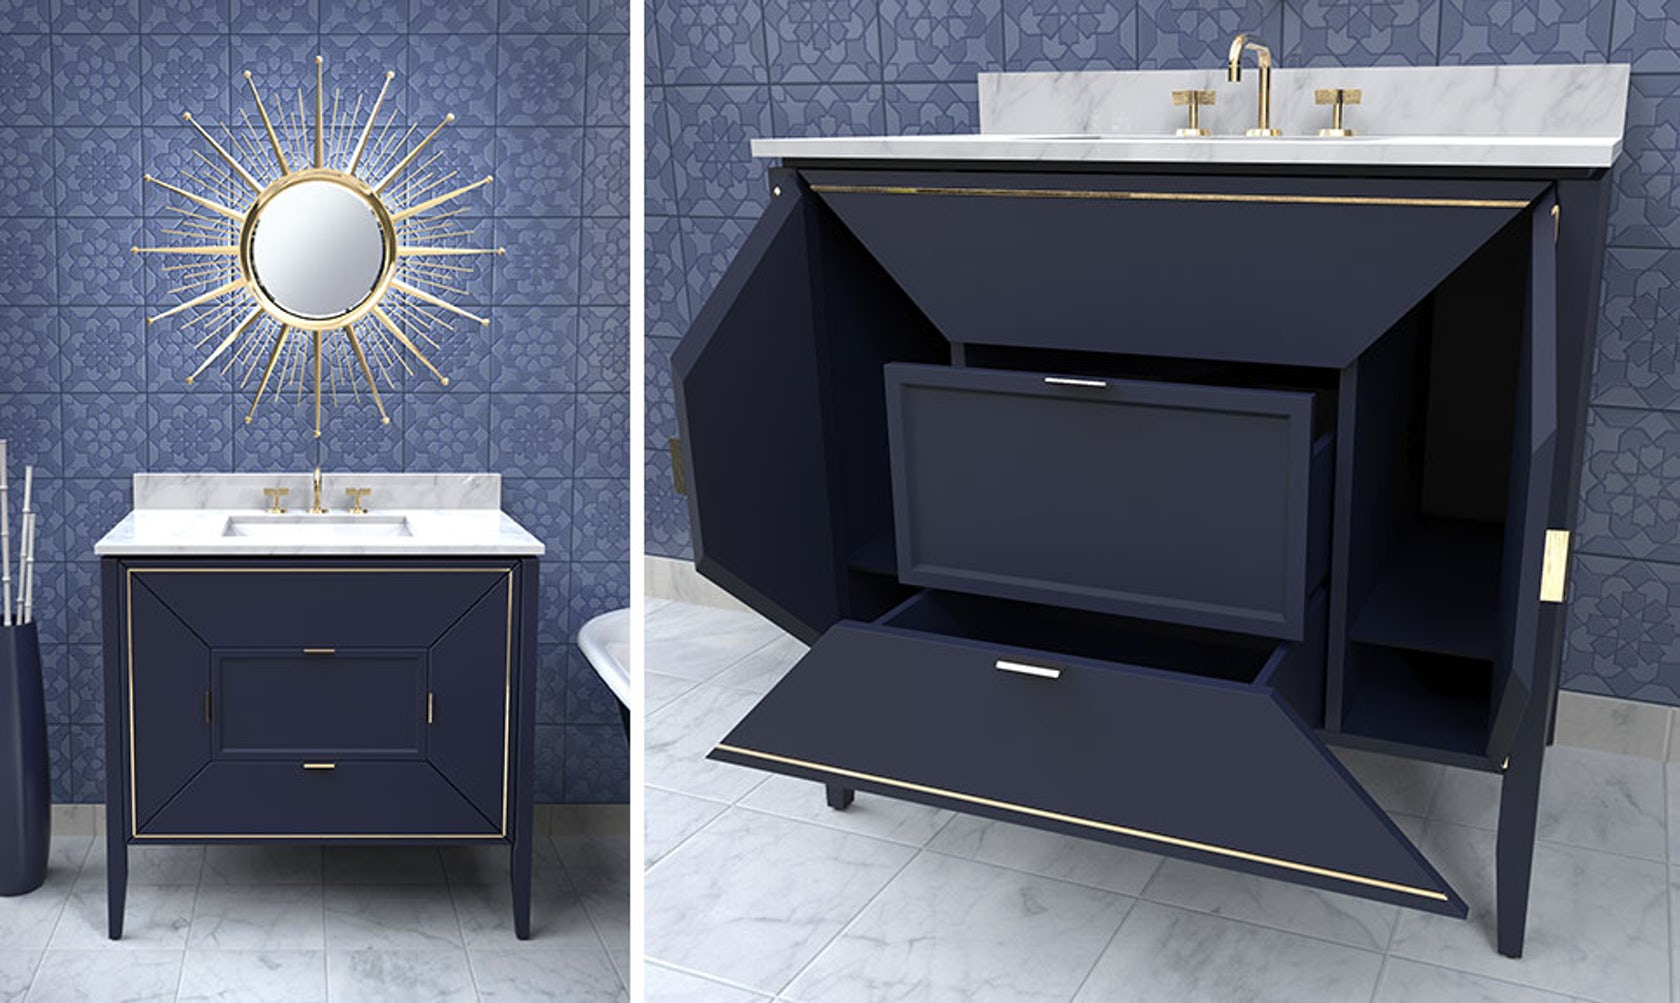 Bathroom furniture companies - Top Kitchen And Bath Trends From Kbis 2017 Fixtures Fittings And Cabinetry Architizer